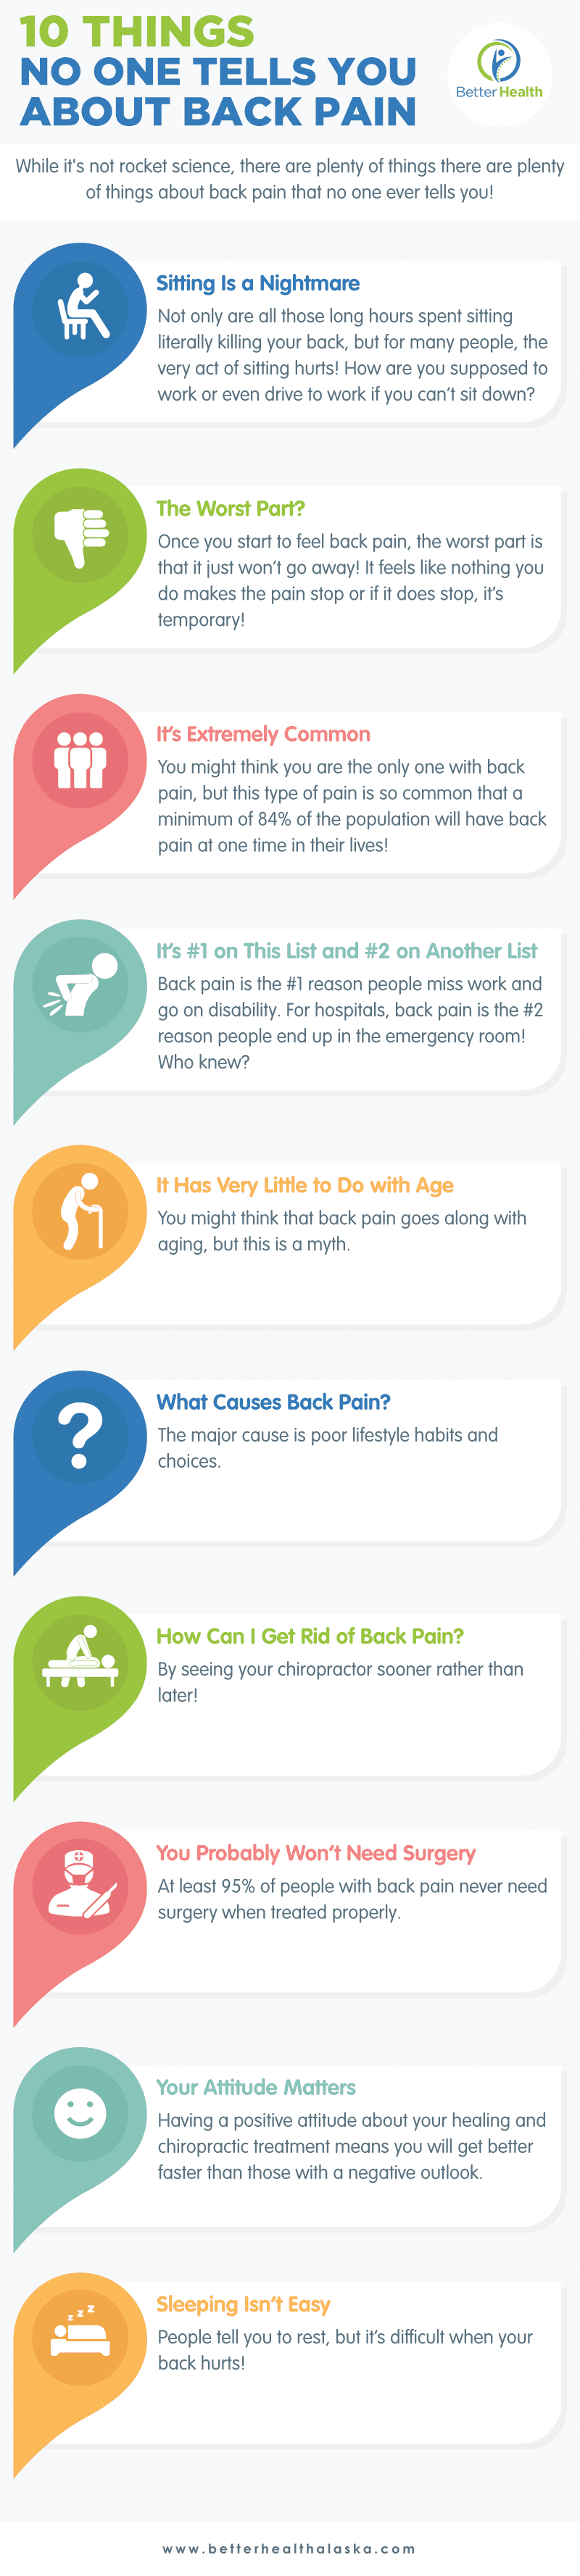 10 Things No One Tells You About Back Pain Infographic